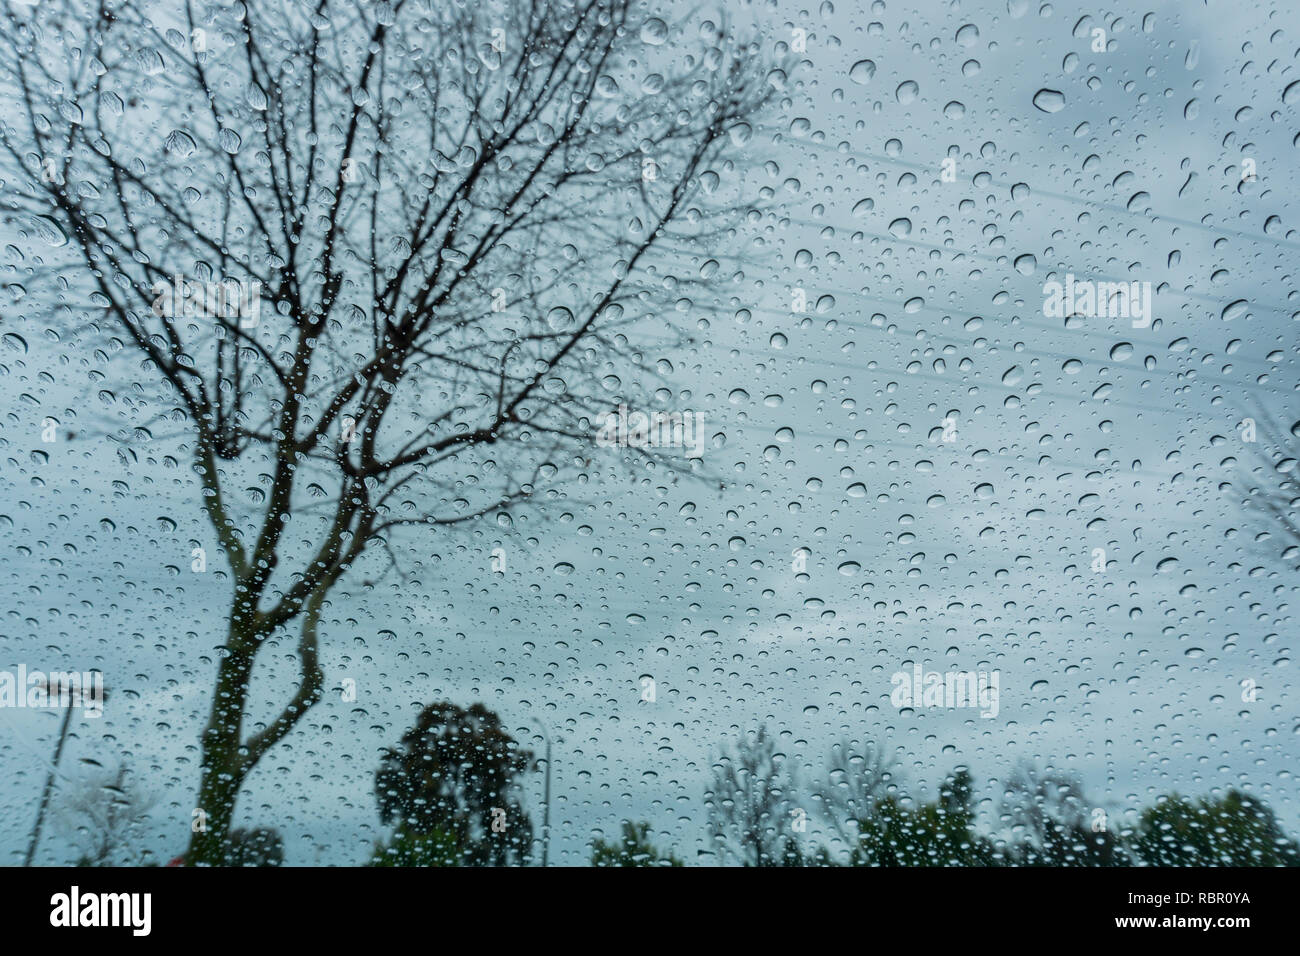 Drops of rain on the window; blurred trees in the background; shallow depth of field - Stock Image